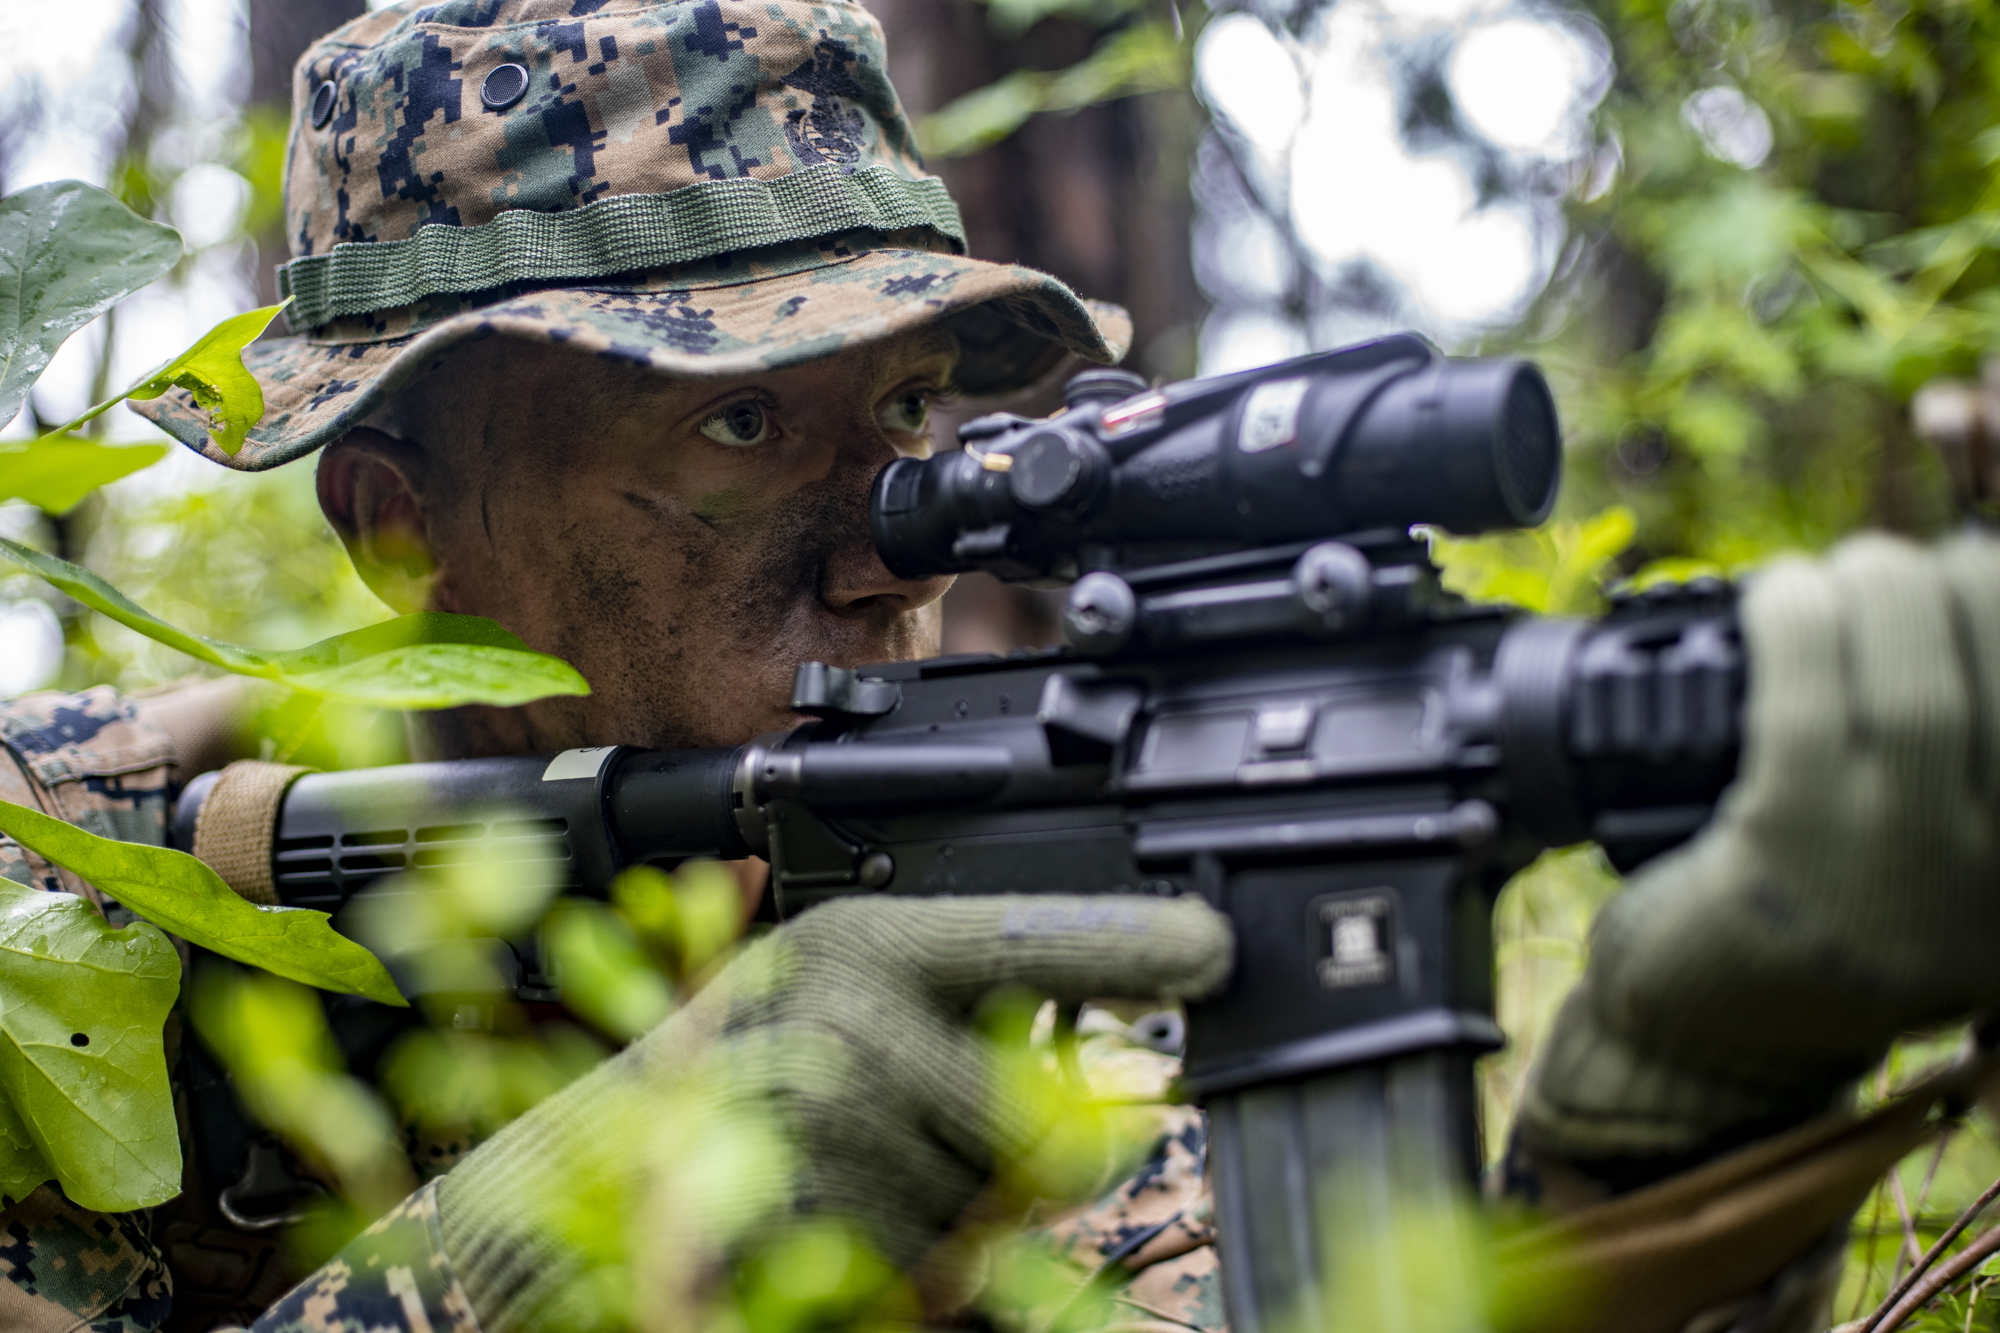 Cpl. Geoffrey Daily, a field radio operator with Special Purpose Marine Air-Ground Task Force - Southern Command, provides security during a field exercise at Camp Lejeune, N.C., May 6, 2020. (Sgt. Andy O. Martinez/Marine Corps)